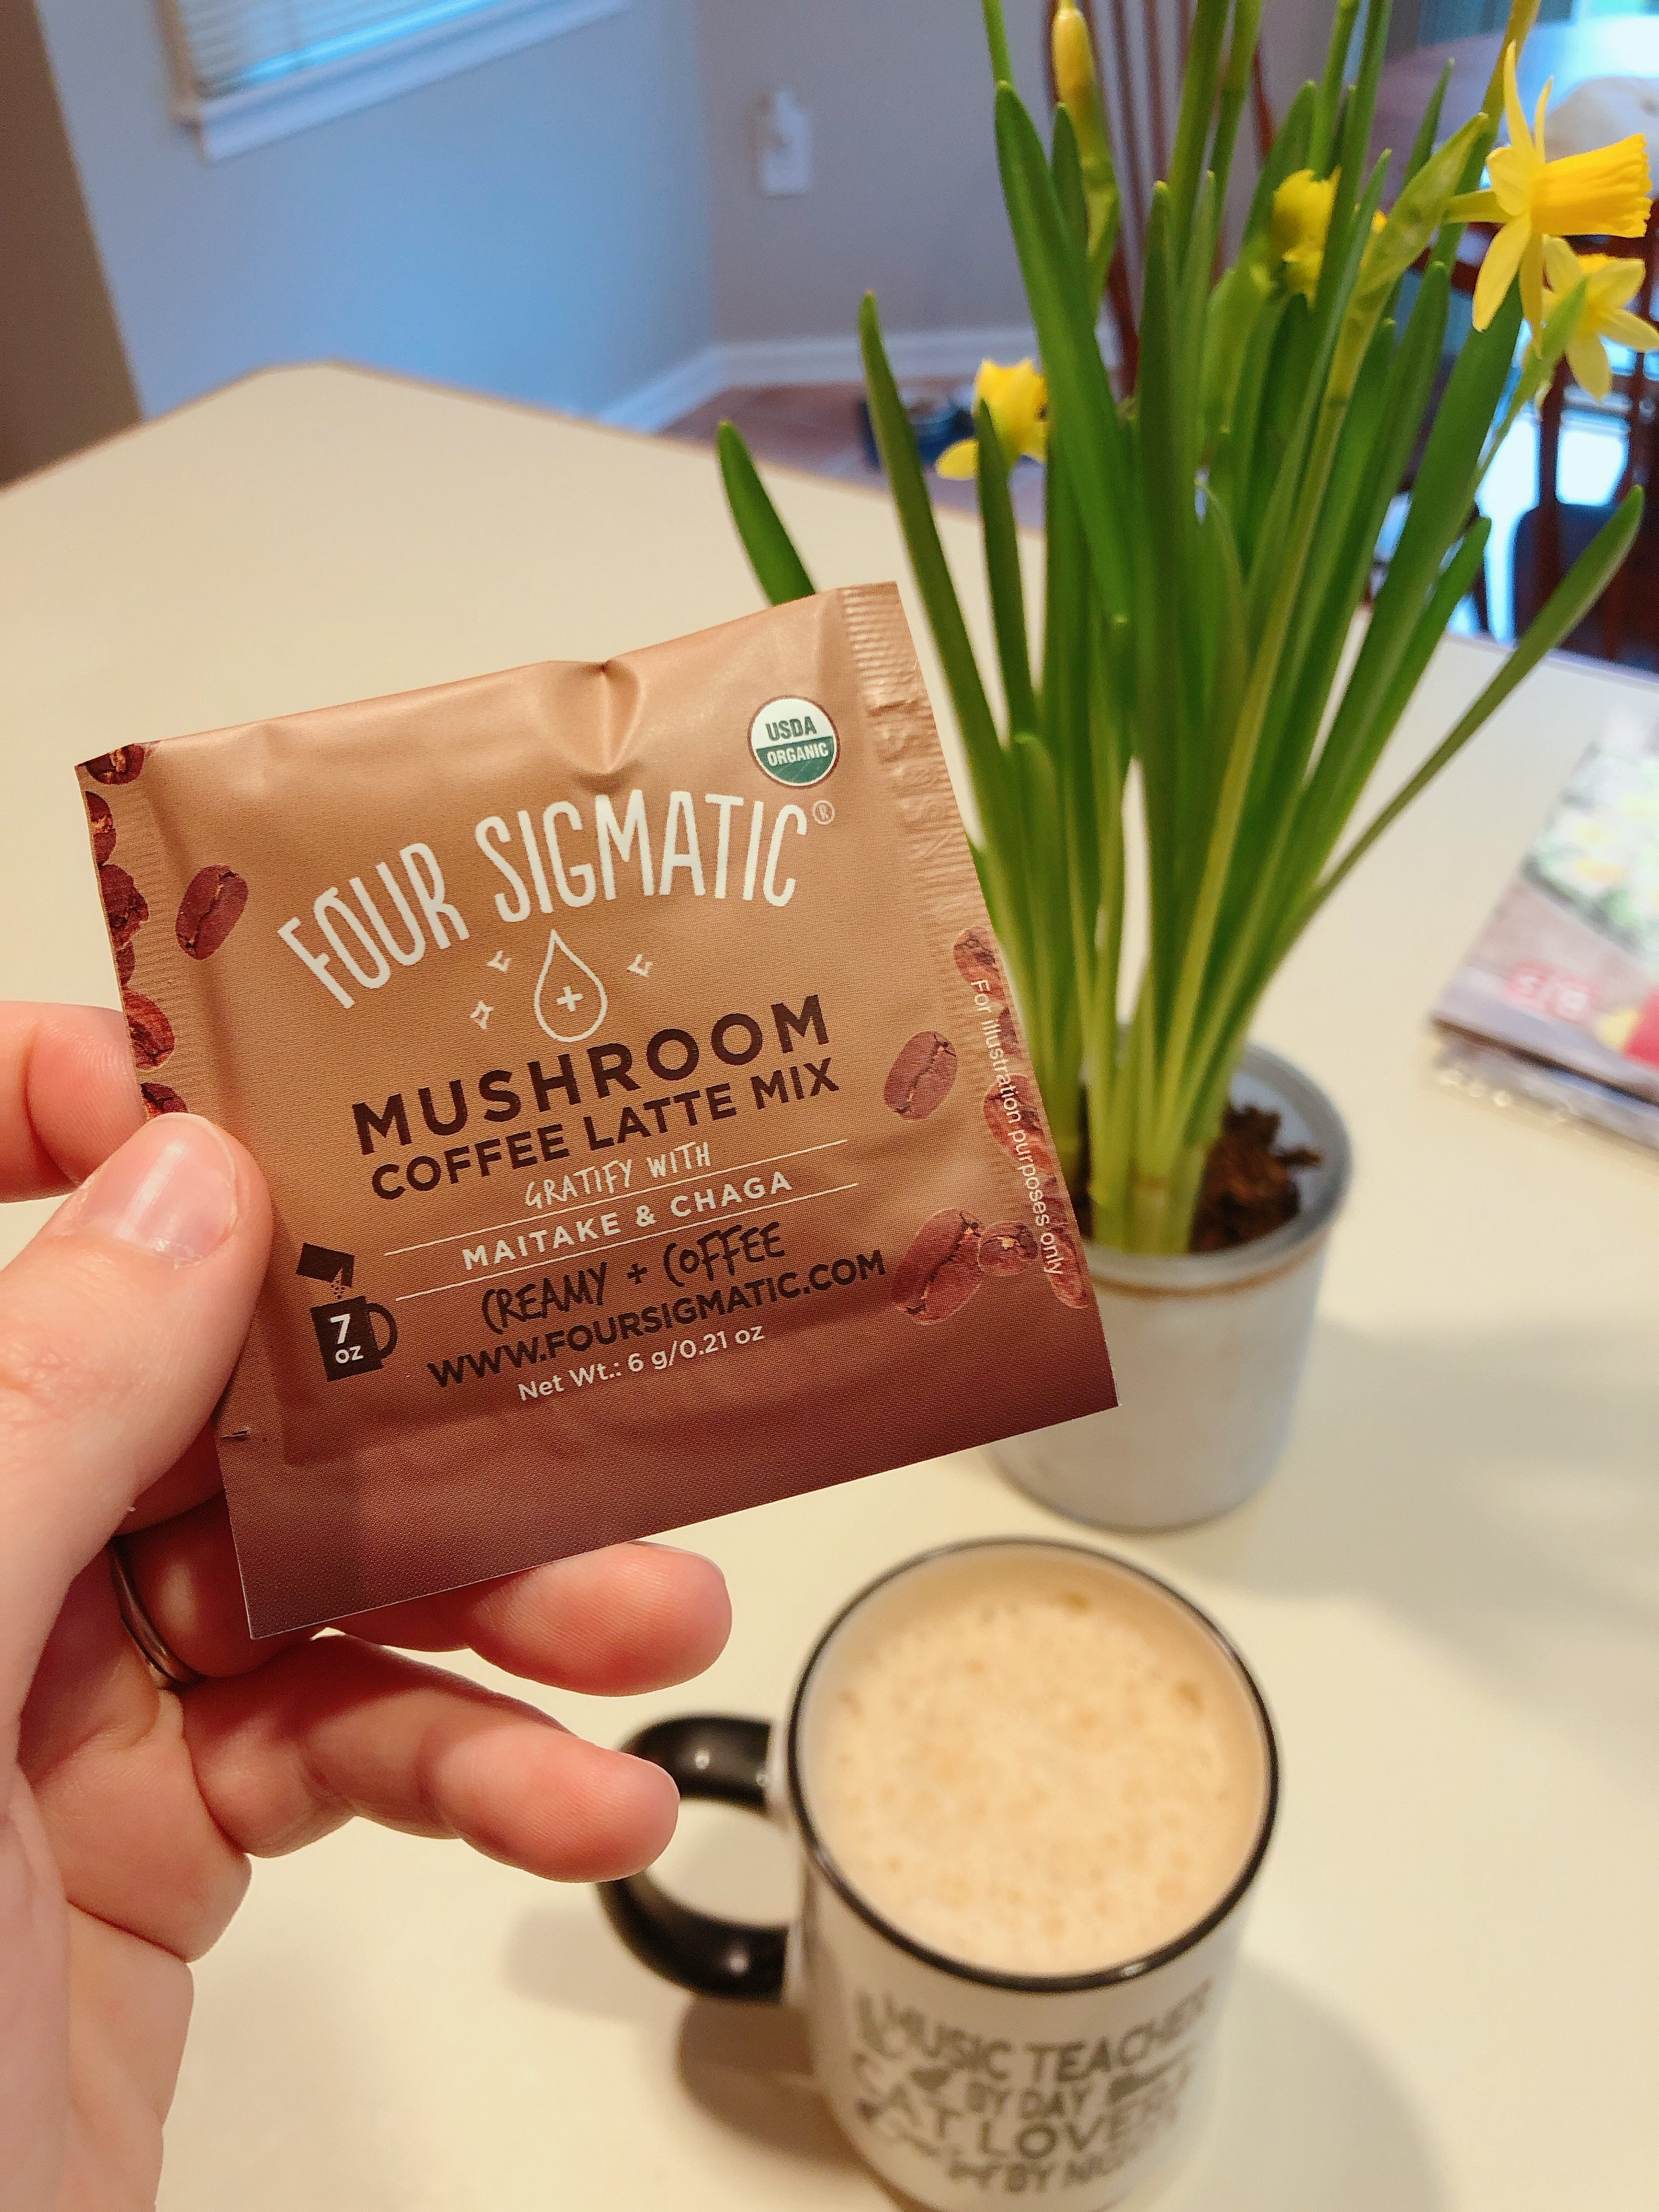 My latest coffee obsession, Mushroom Coffee Latte Mix from Four Sigmatic. Click   here   to get $10 off!